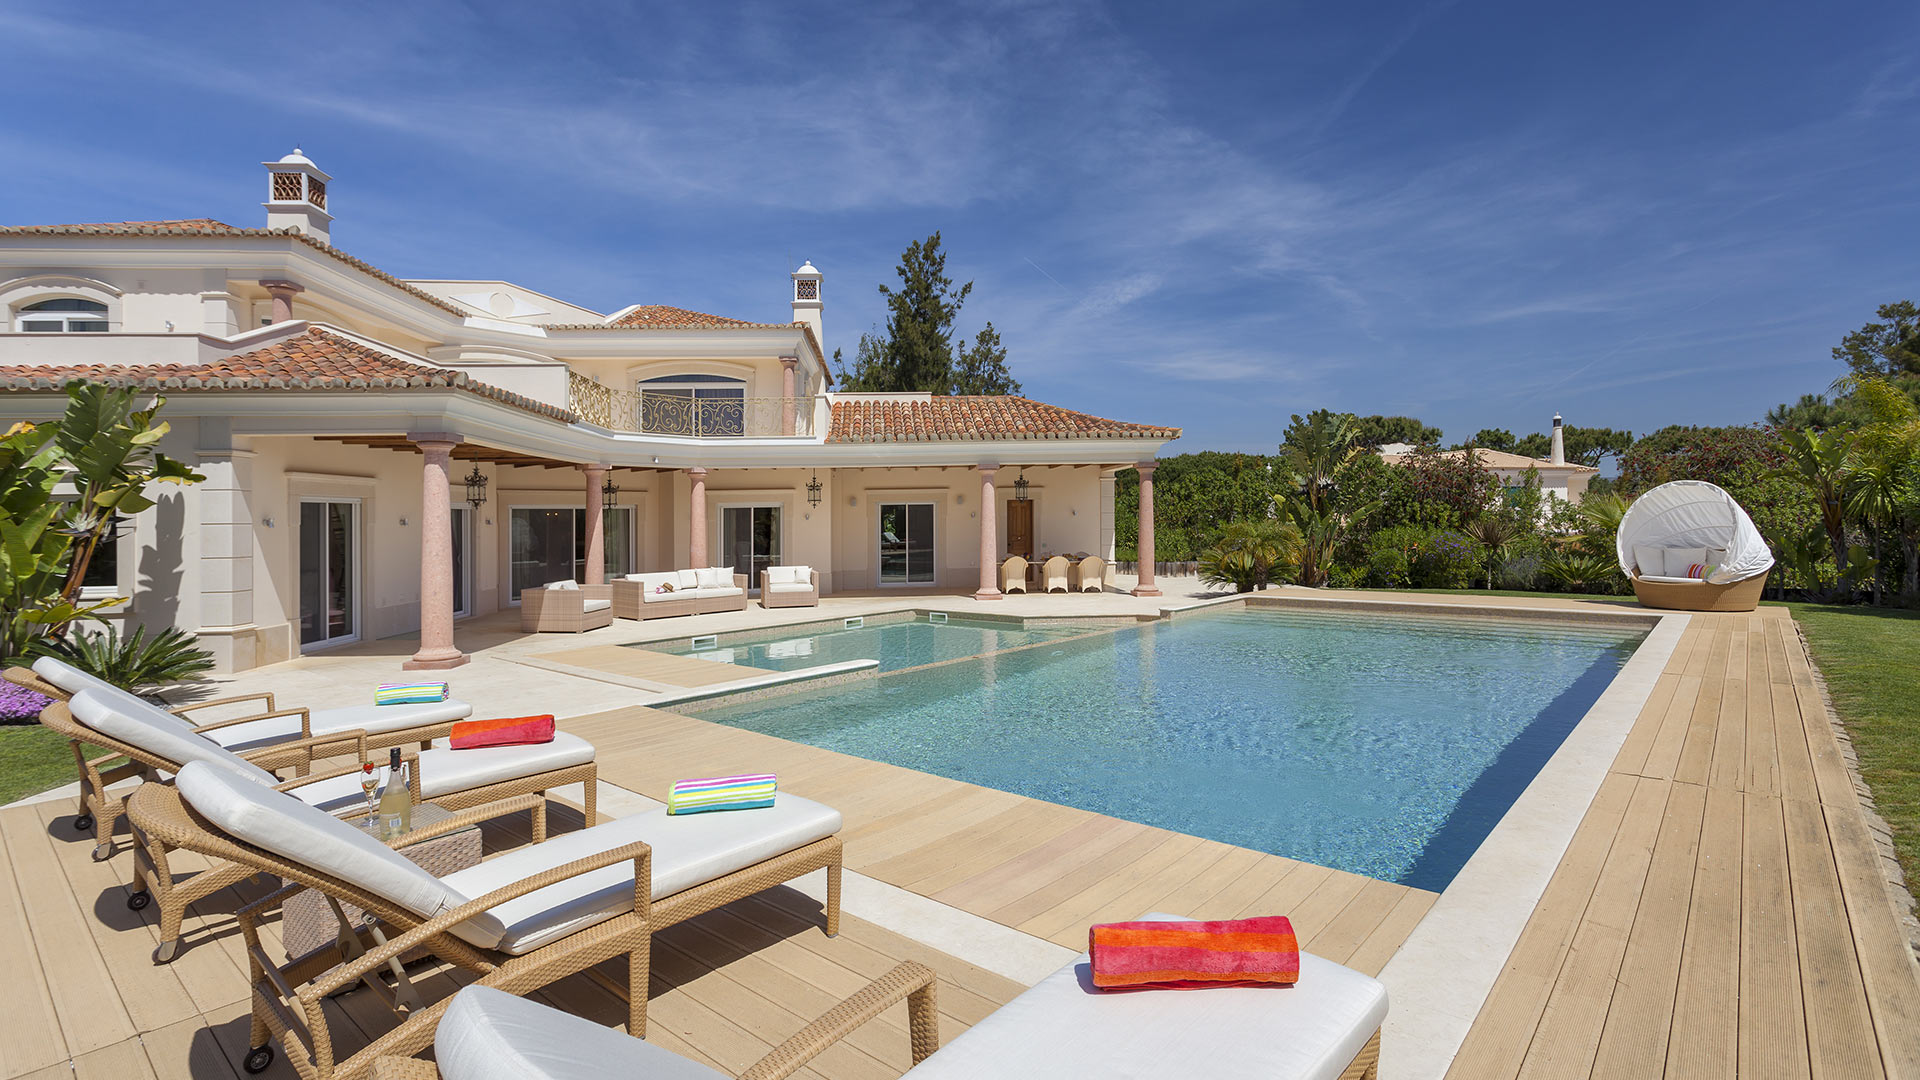 Villa Villa Princesse, Rental in Algarve